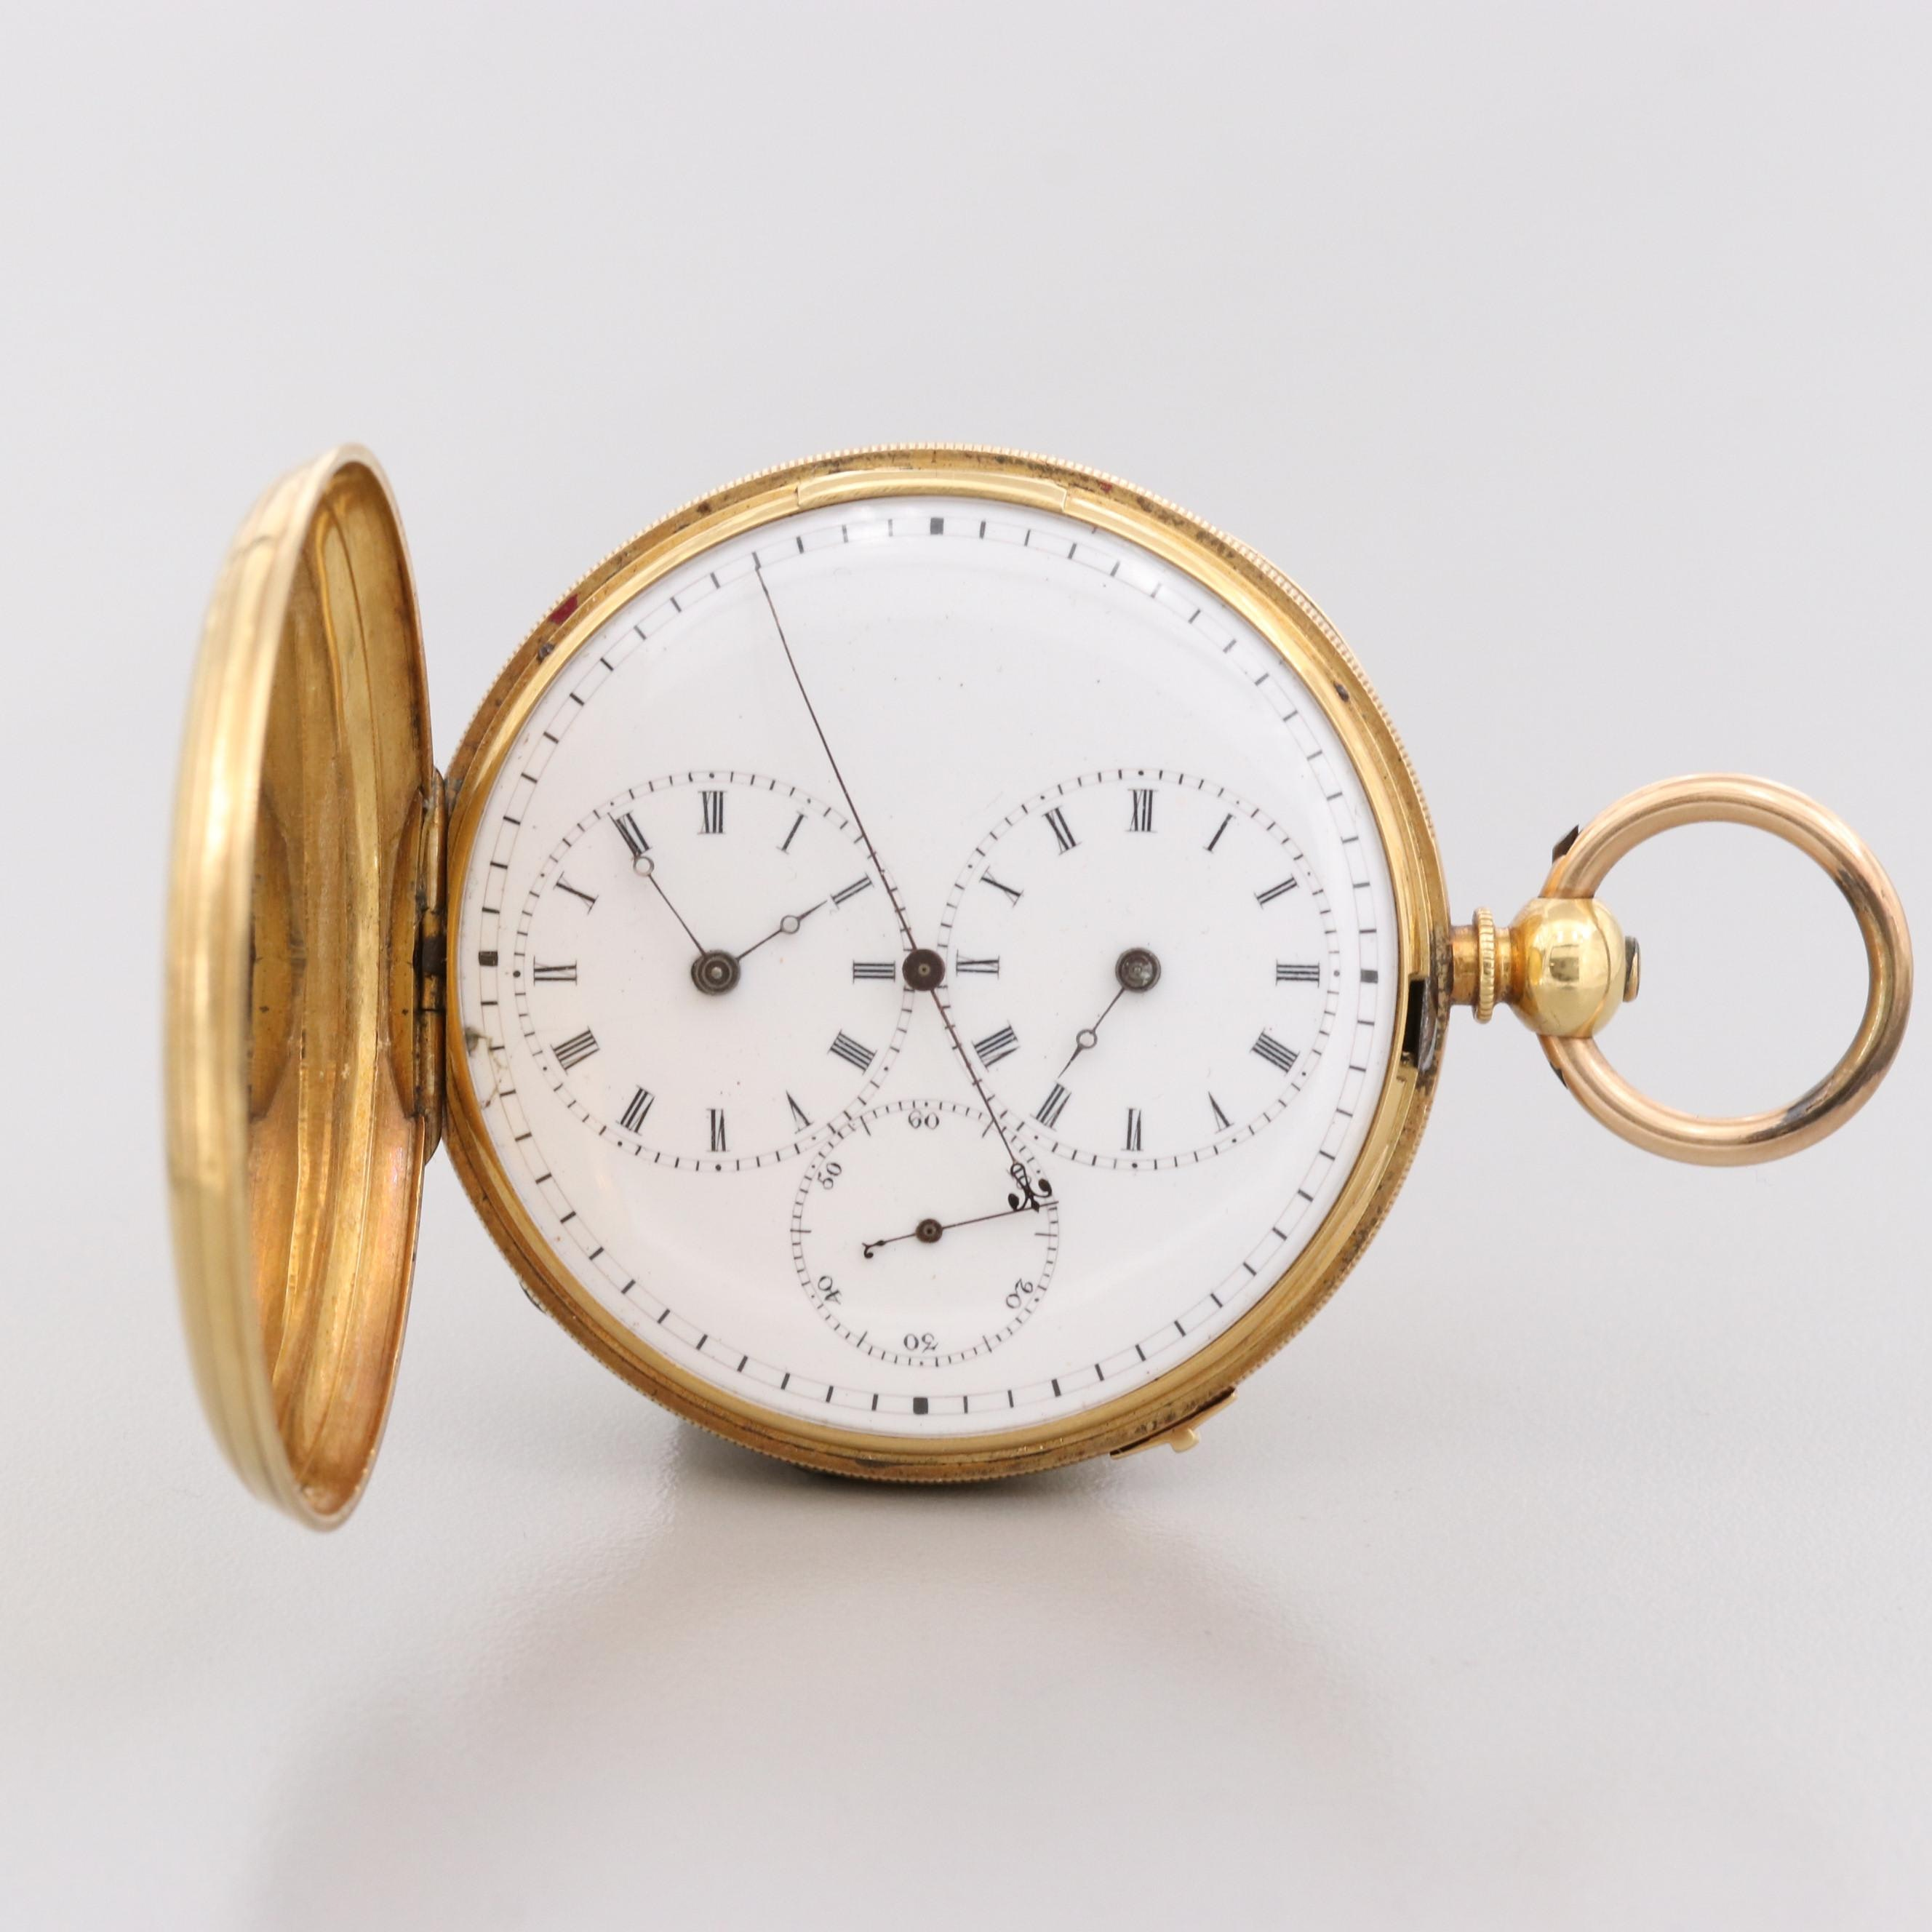 18K Yellow Gold Captain's Pocket Watch